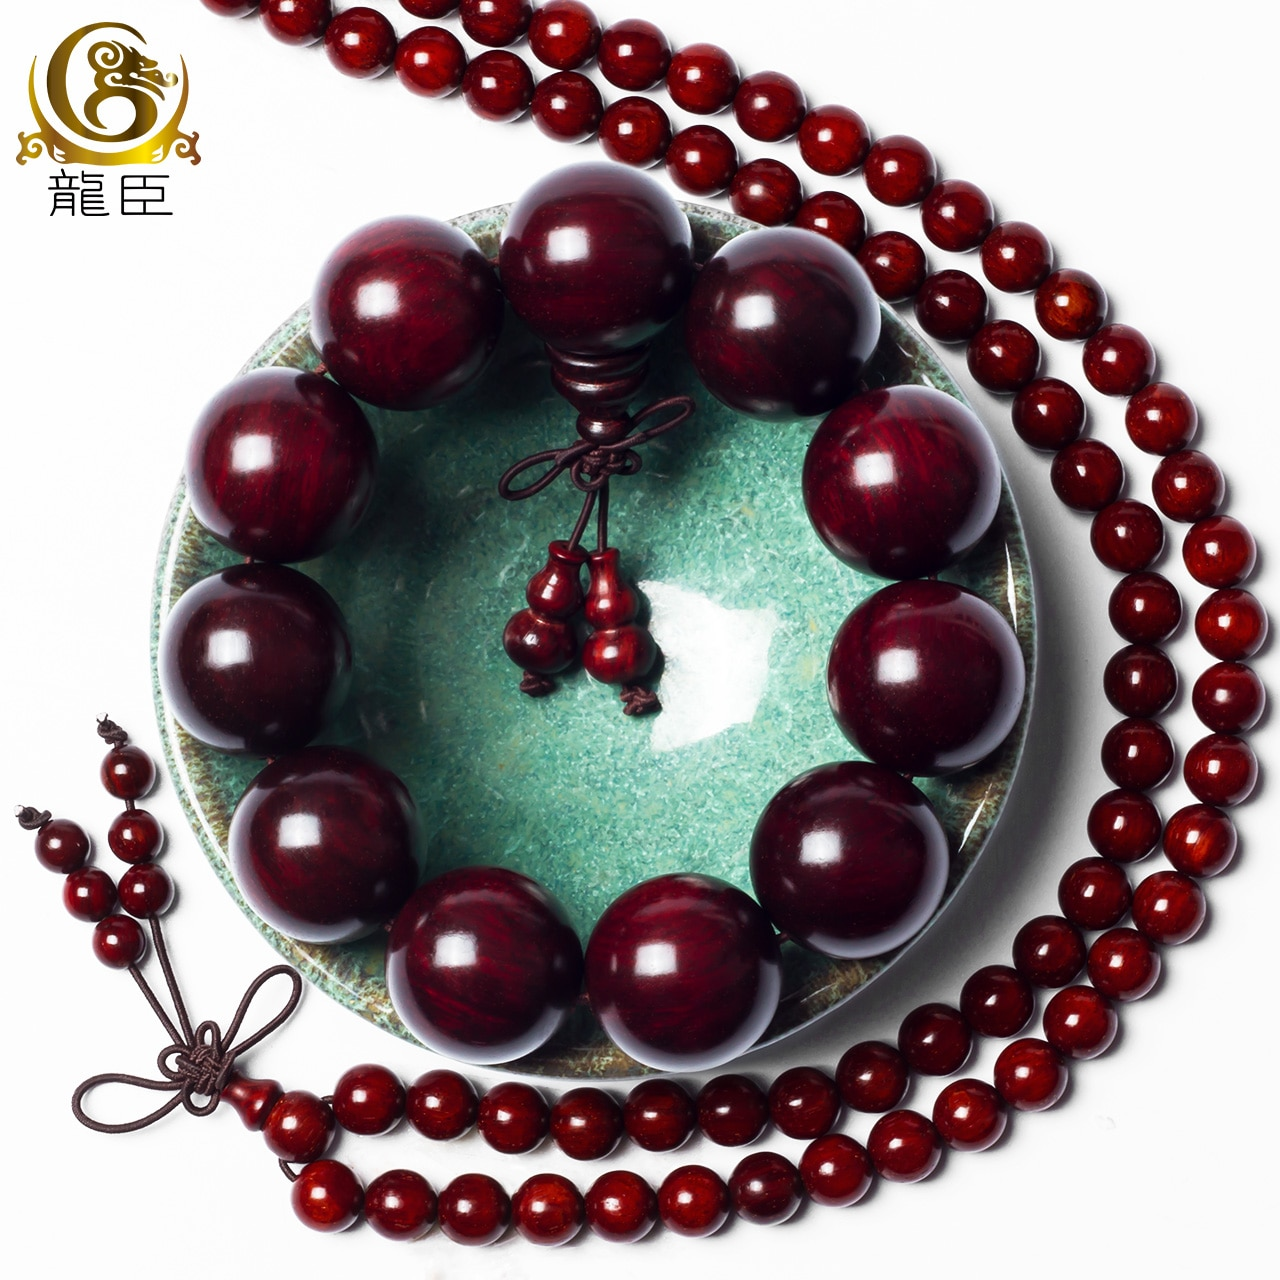 Review high quality authentic India Natural Lobular Red Sandalwood wooden Buddha Beads Bracelets Golden Star Old Material Jewelry